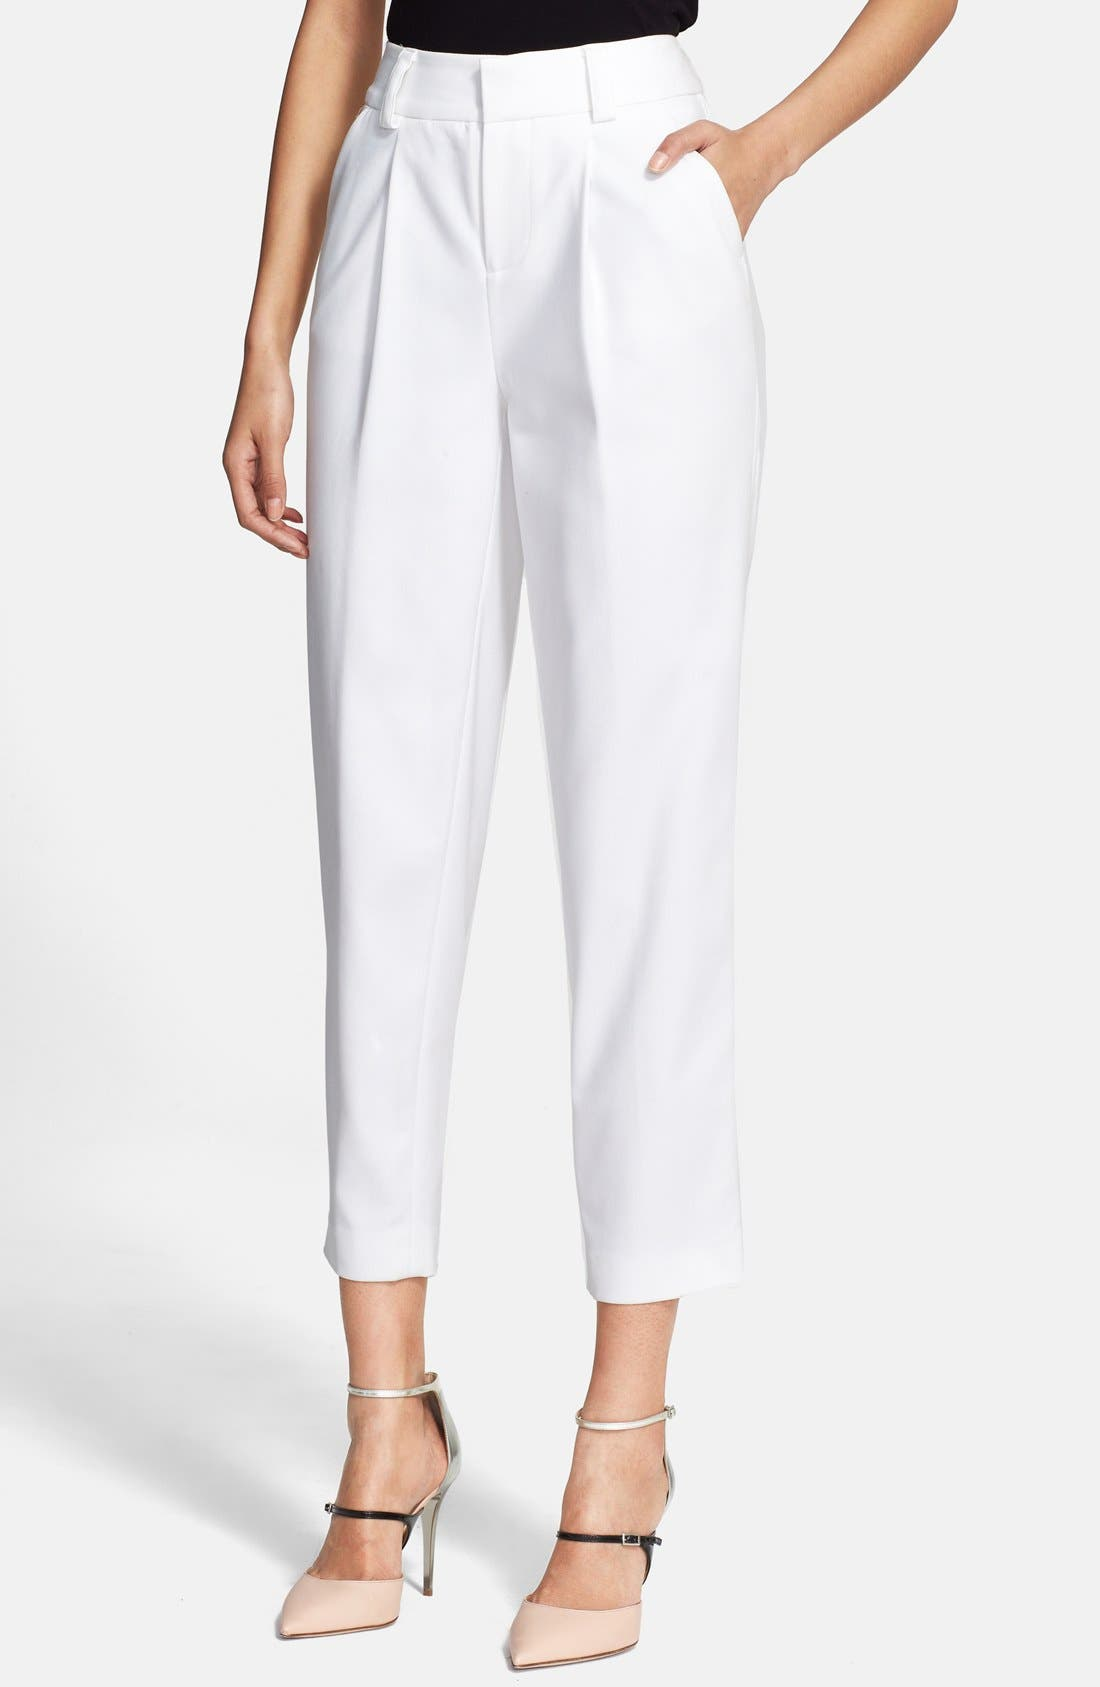 Alternate Image 1 Selected - Alice + Olivia 'Arthur' Ankle Pants